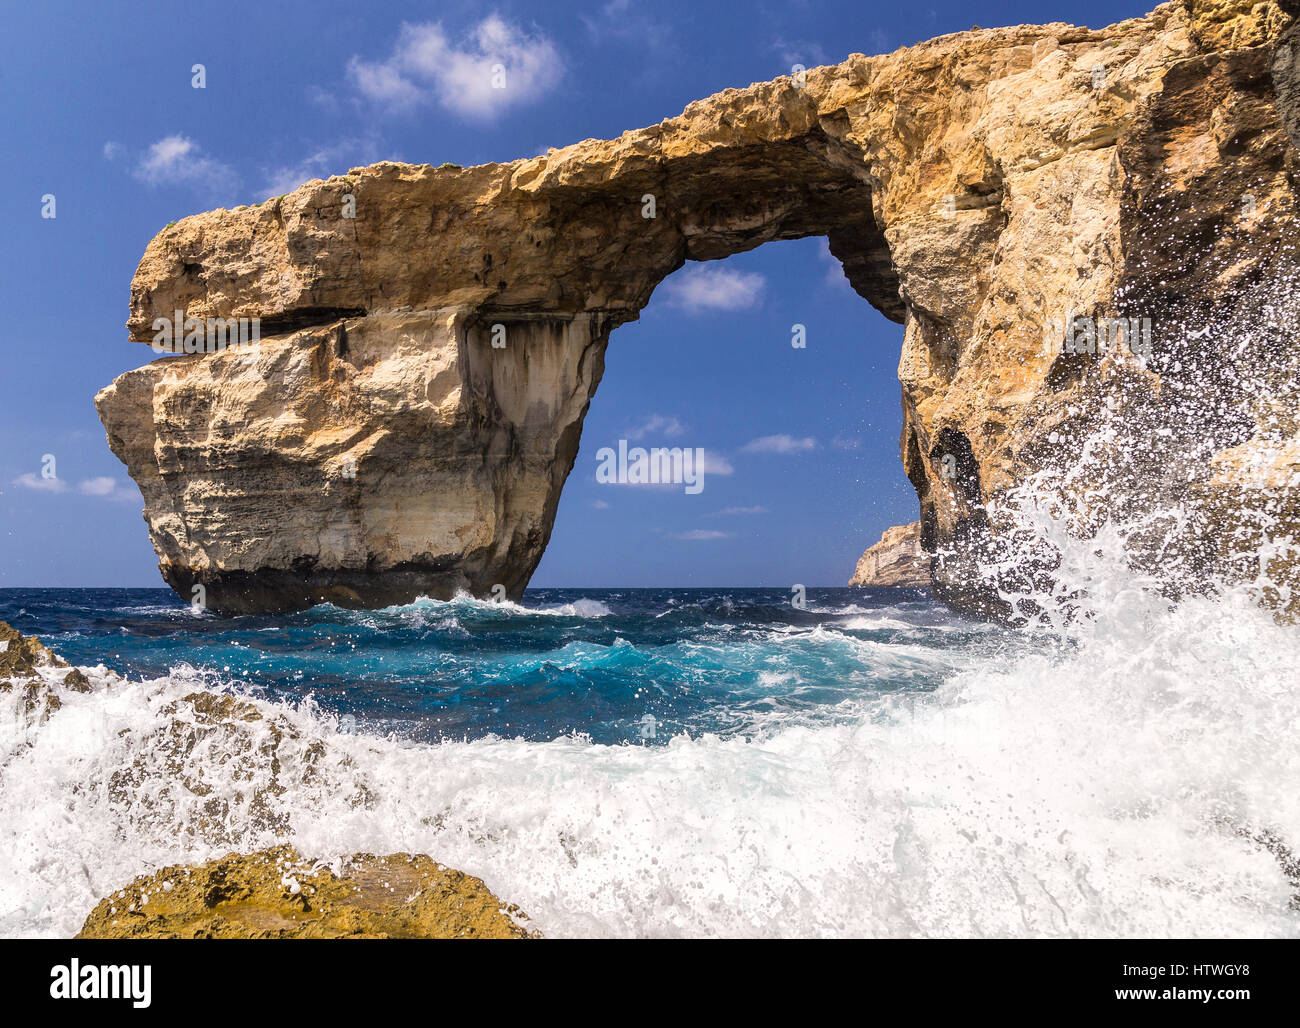 Azure Window - awesome Gozo, Malta  rocky formation, collapsed due erosion in march 2017. Rocky formation lost forever. - Stock Image